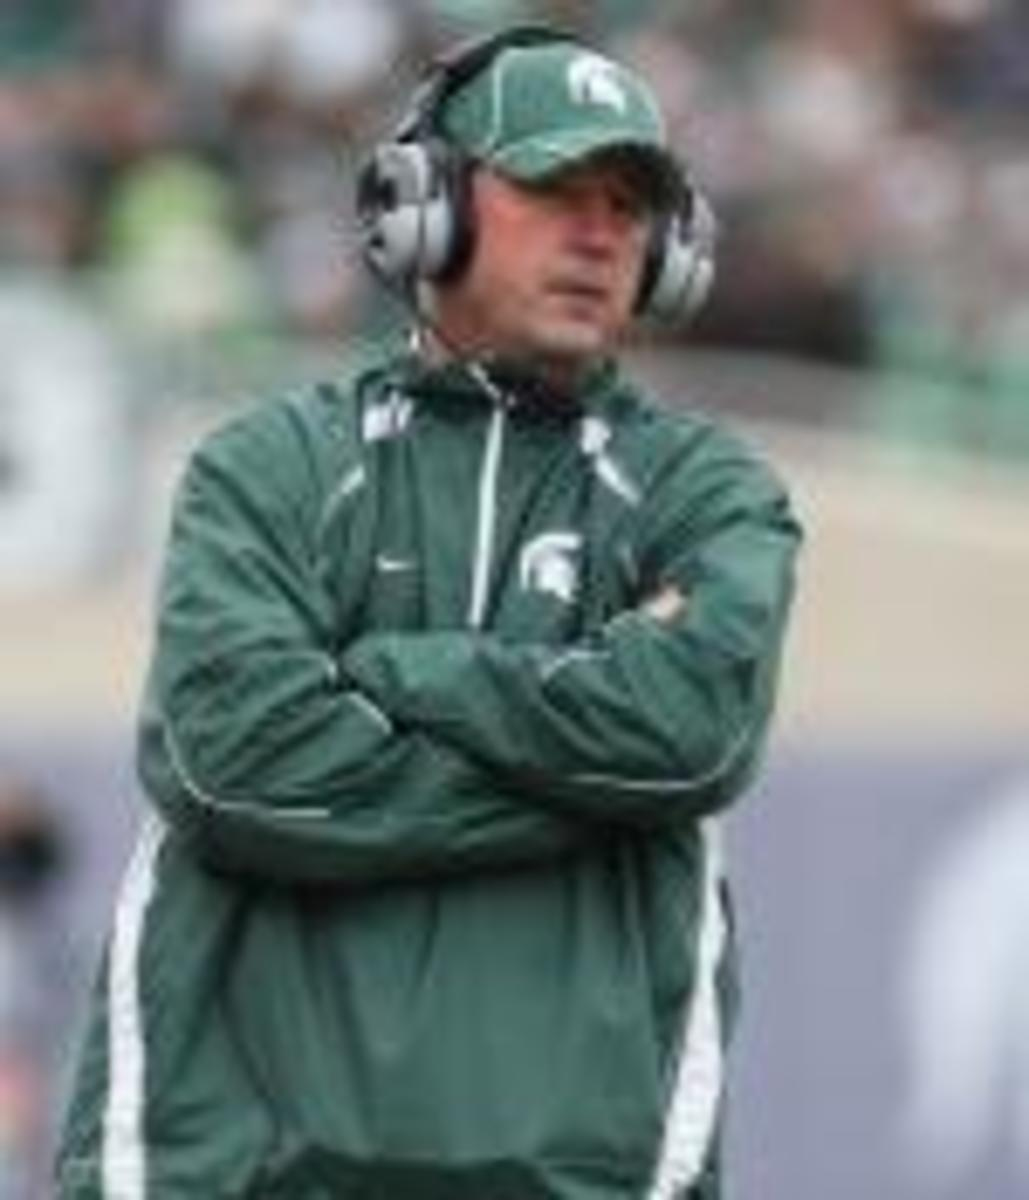 New MSU Offensive Coordinator, Dan Roushar, looks to keep the Spartan offense moving forward.  Photo courtesy of Michigan State University.